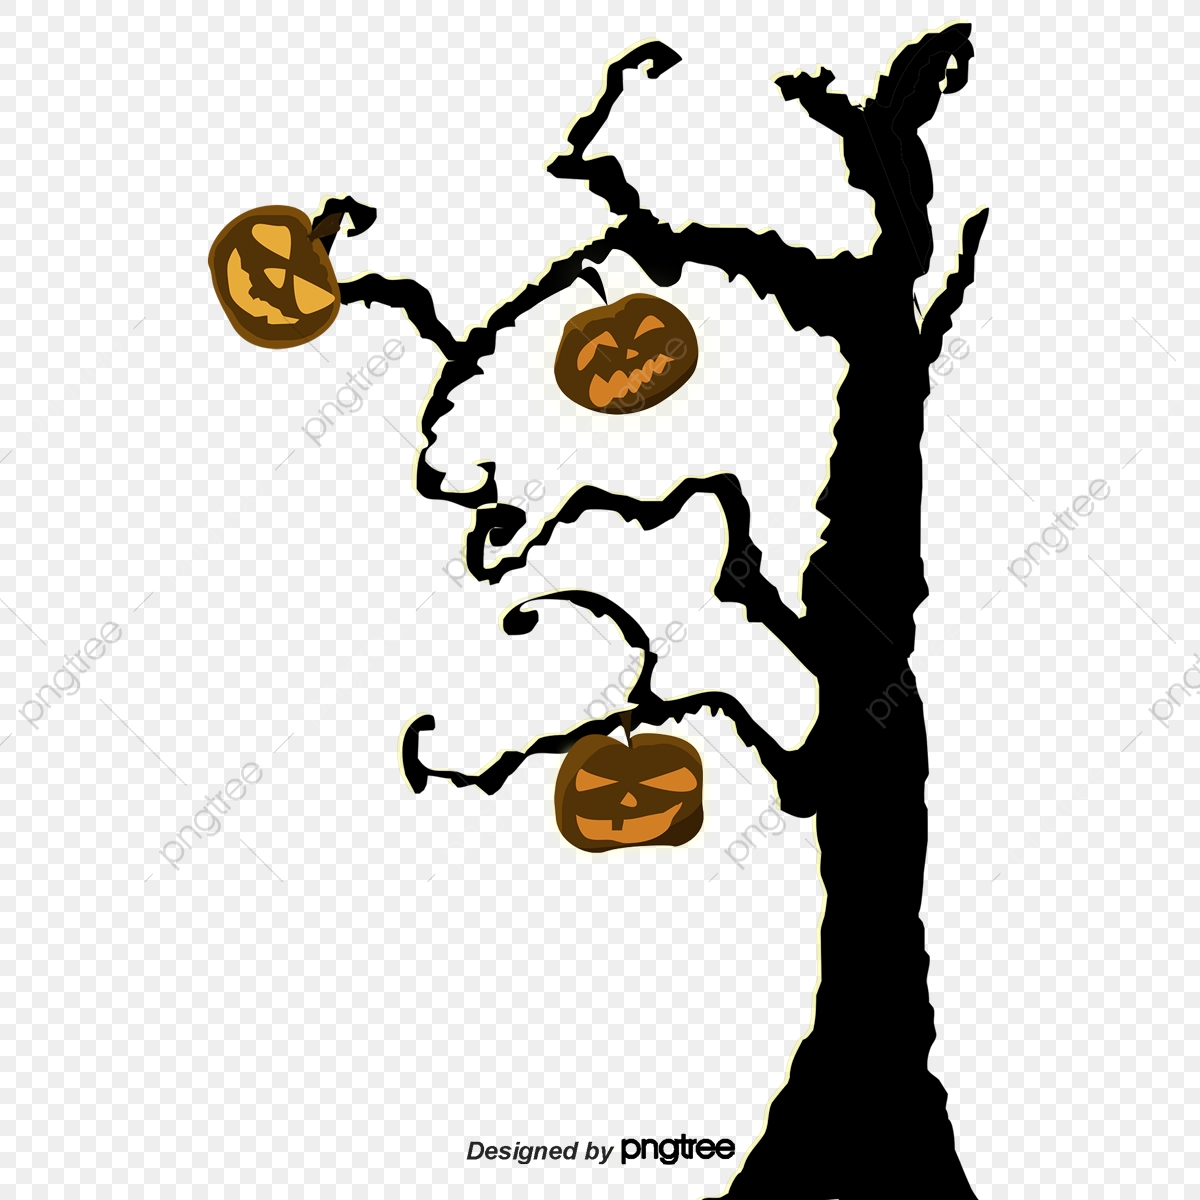 Halloween Tree Png Vector Psd And Clipart With Transparent Background For Free Download Pngtree